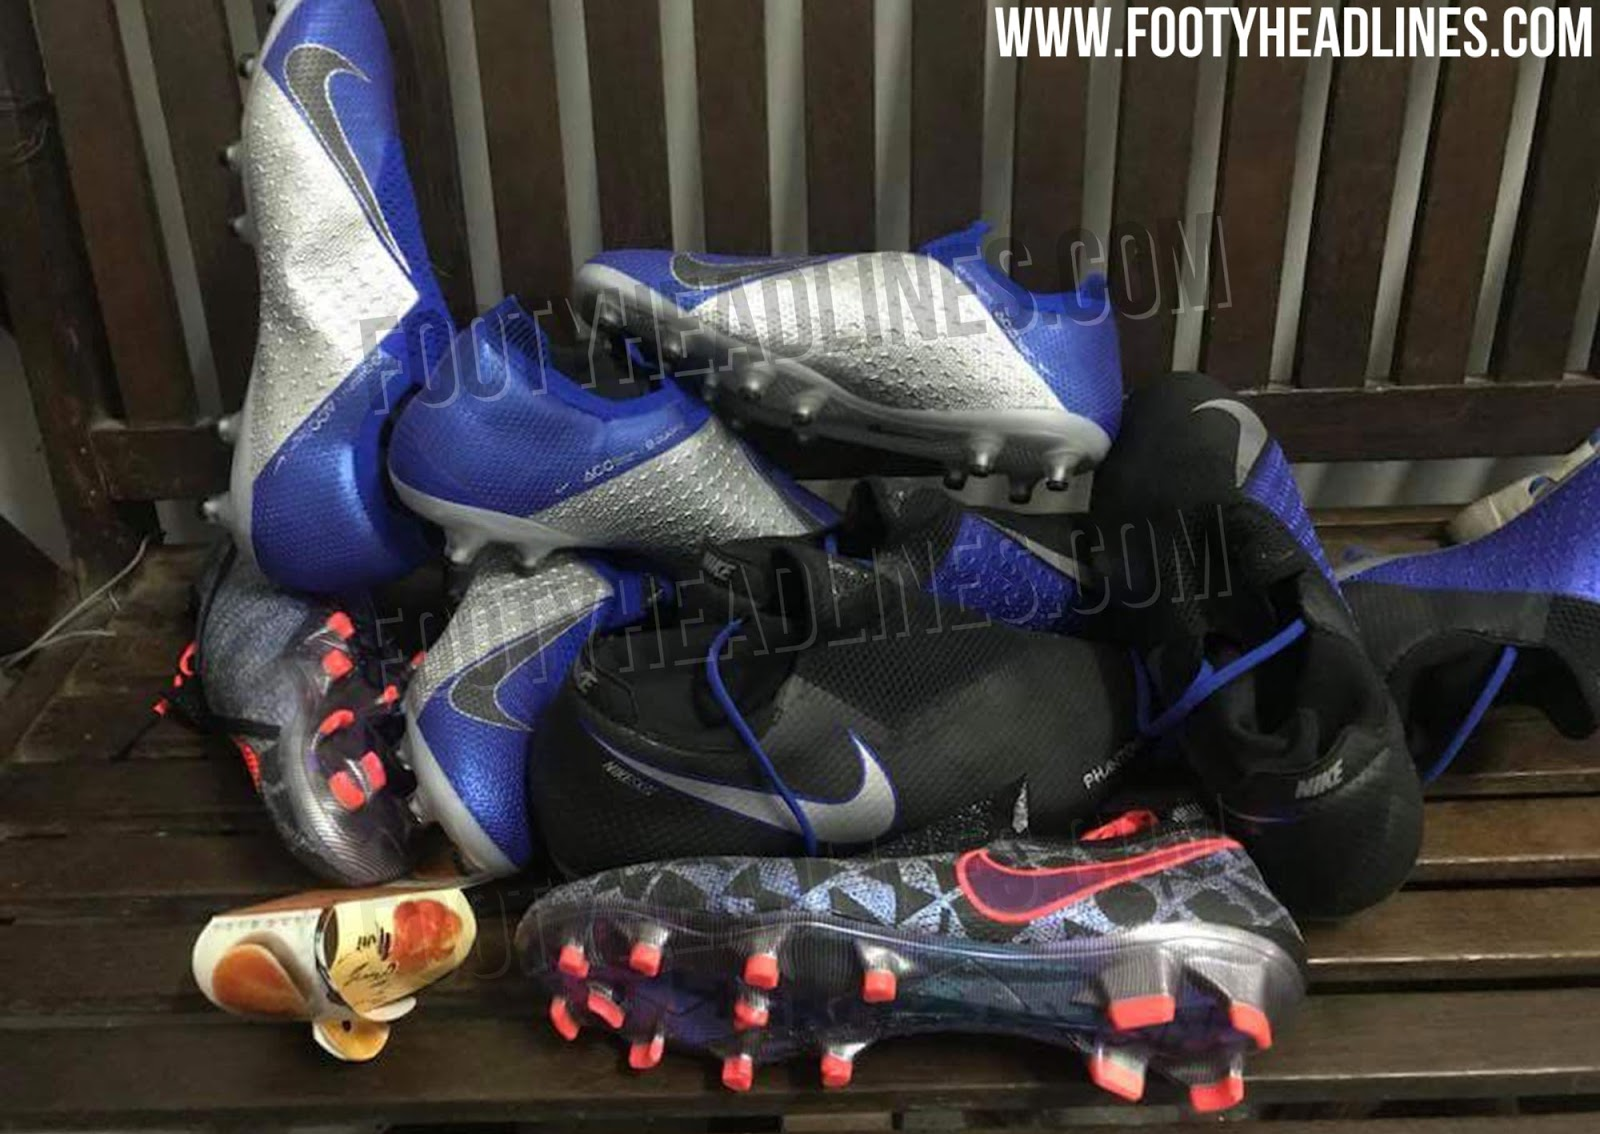 3 Unreleased Nike Phantom VSN 2018-19 Boots Leaked - Wpsoccer ef013c4f248